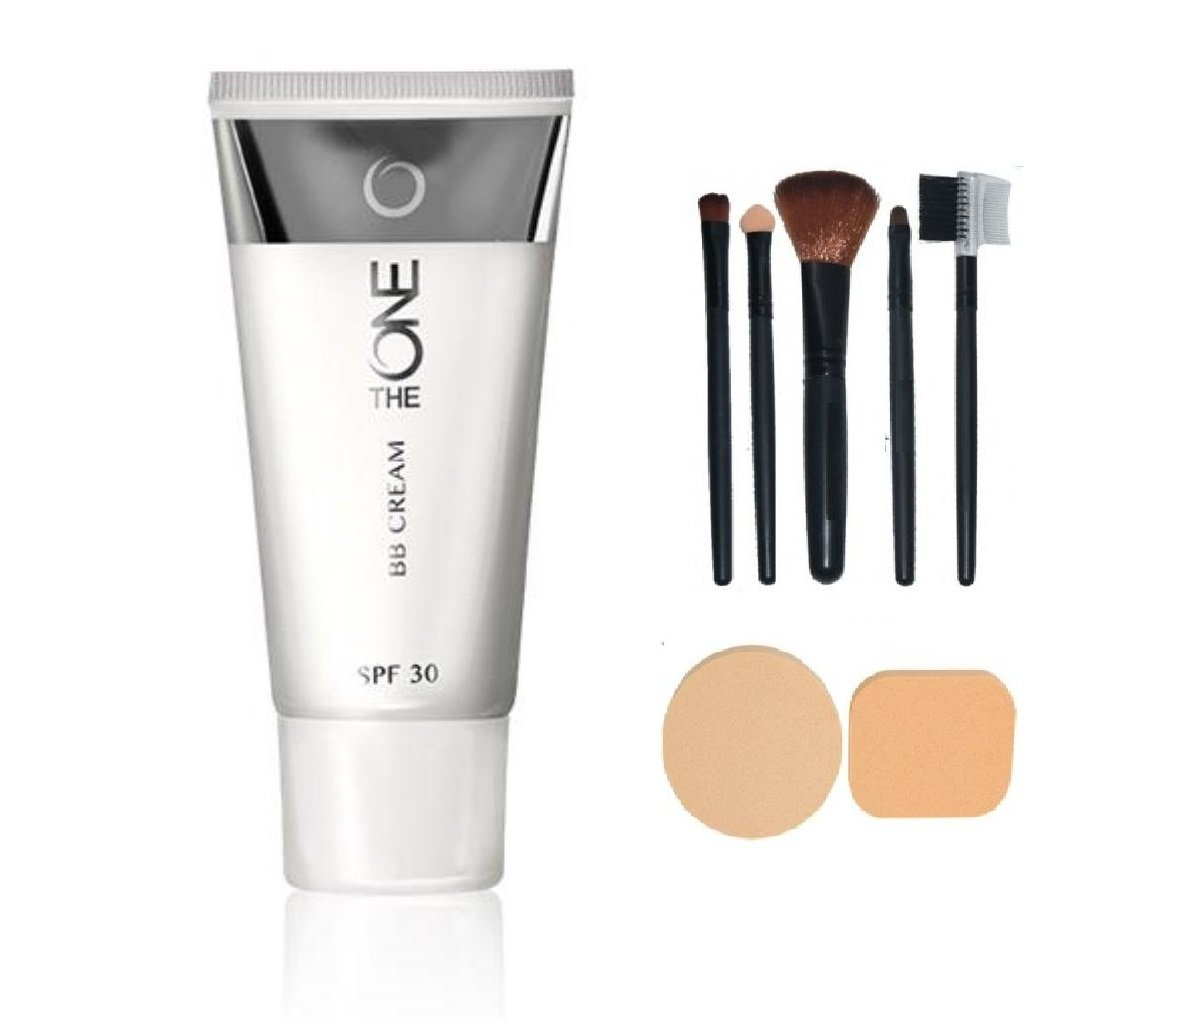 Buy Oriflame Sweden Bb Cream Foundation Light Spf 30 With Make Up Giordani Gold Cc 35 Brush Set 5 Pcs Compact Powder Puff 2 Online At Low Prices In India